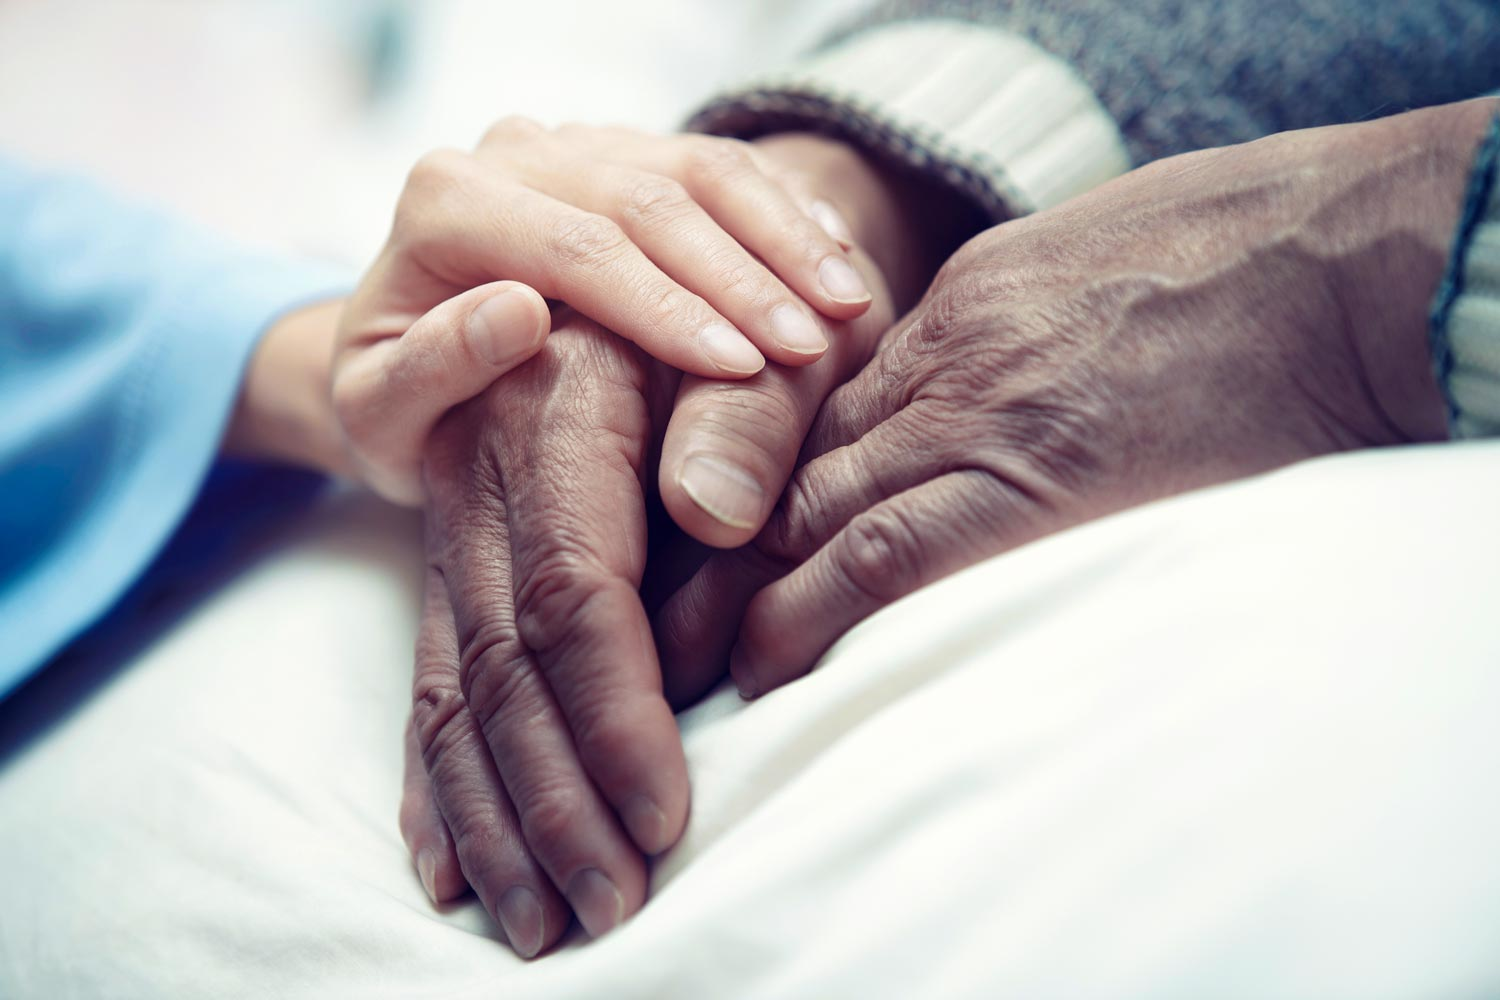 Study: Frail Seniors Going Without Desperately Needed In-Home Health Care